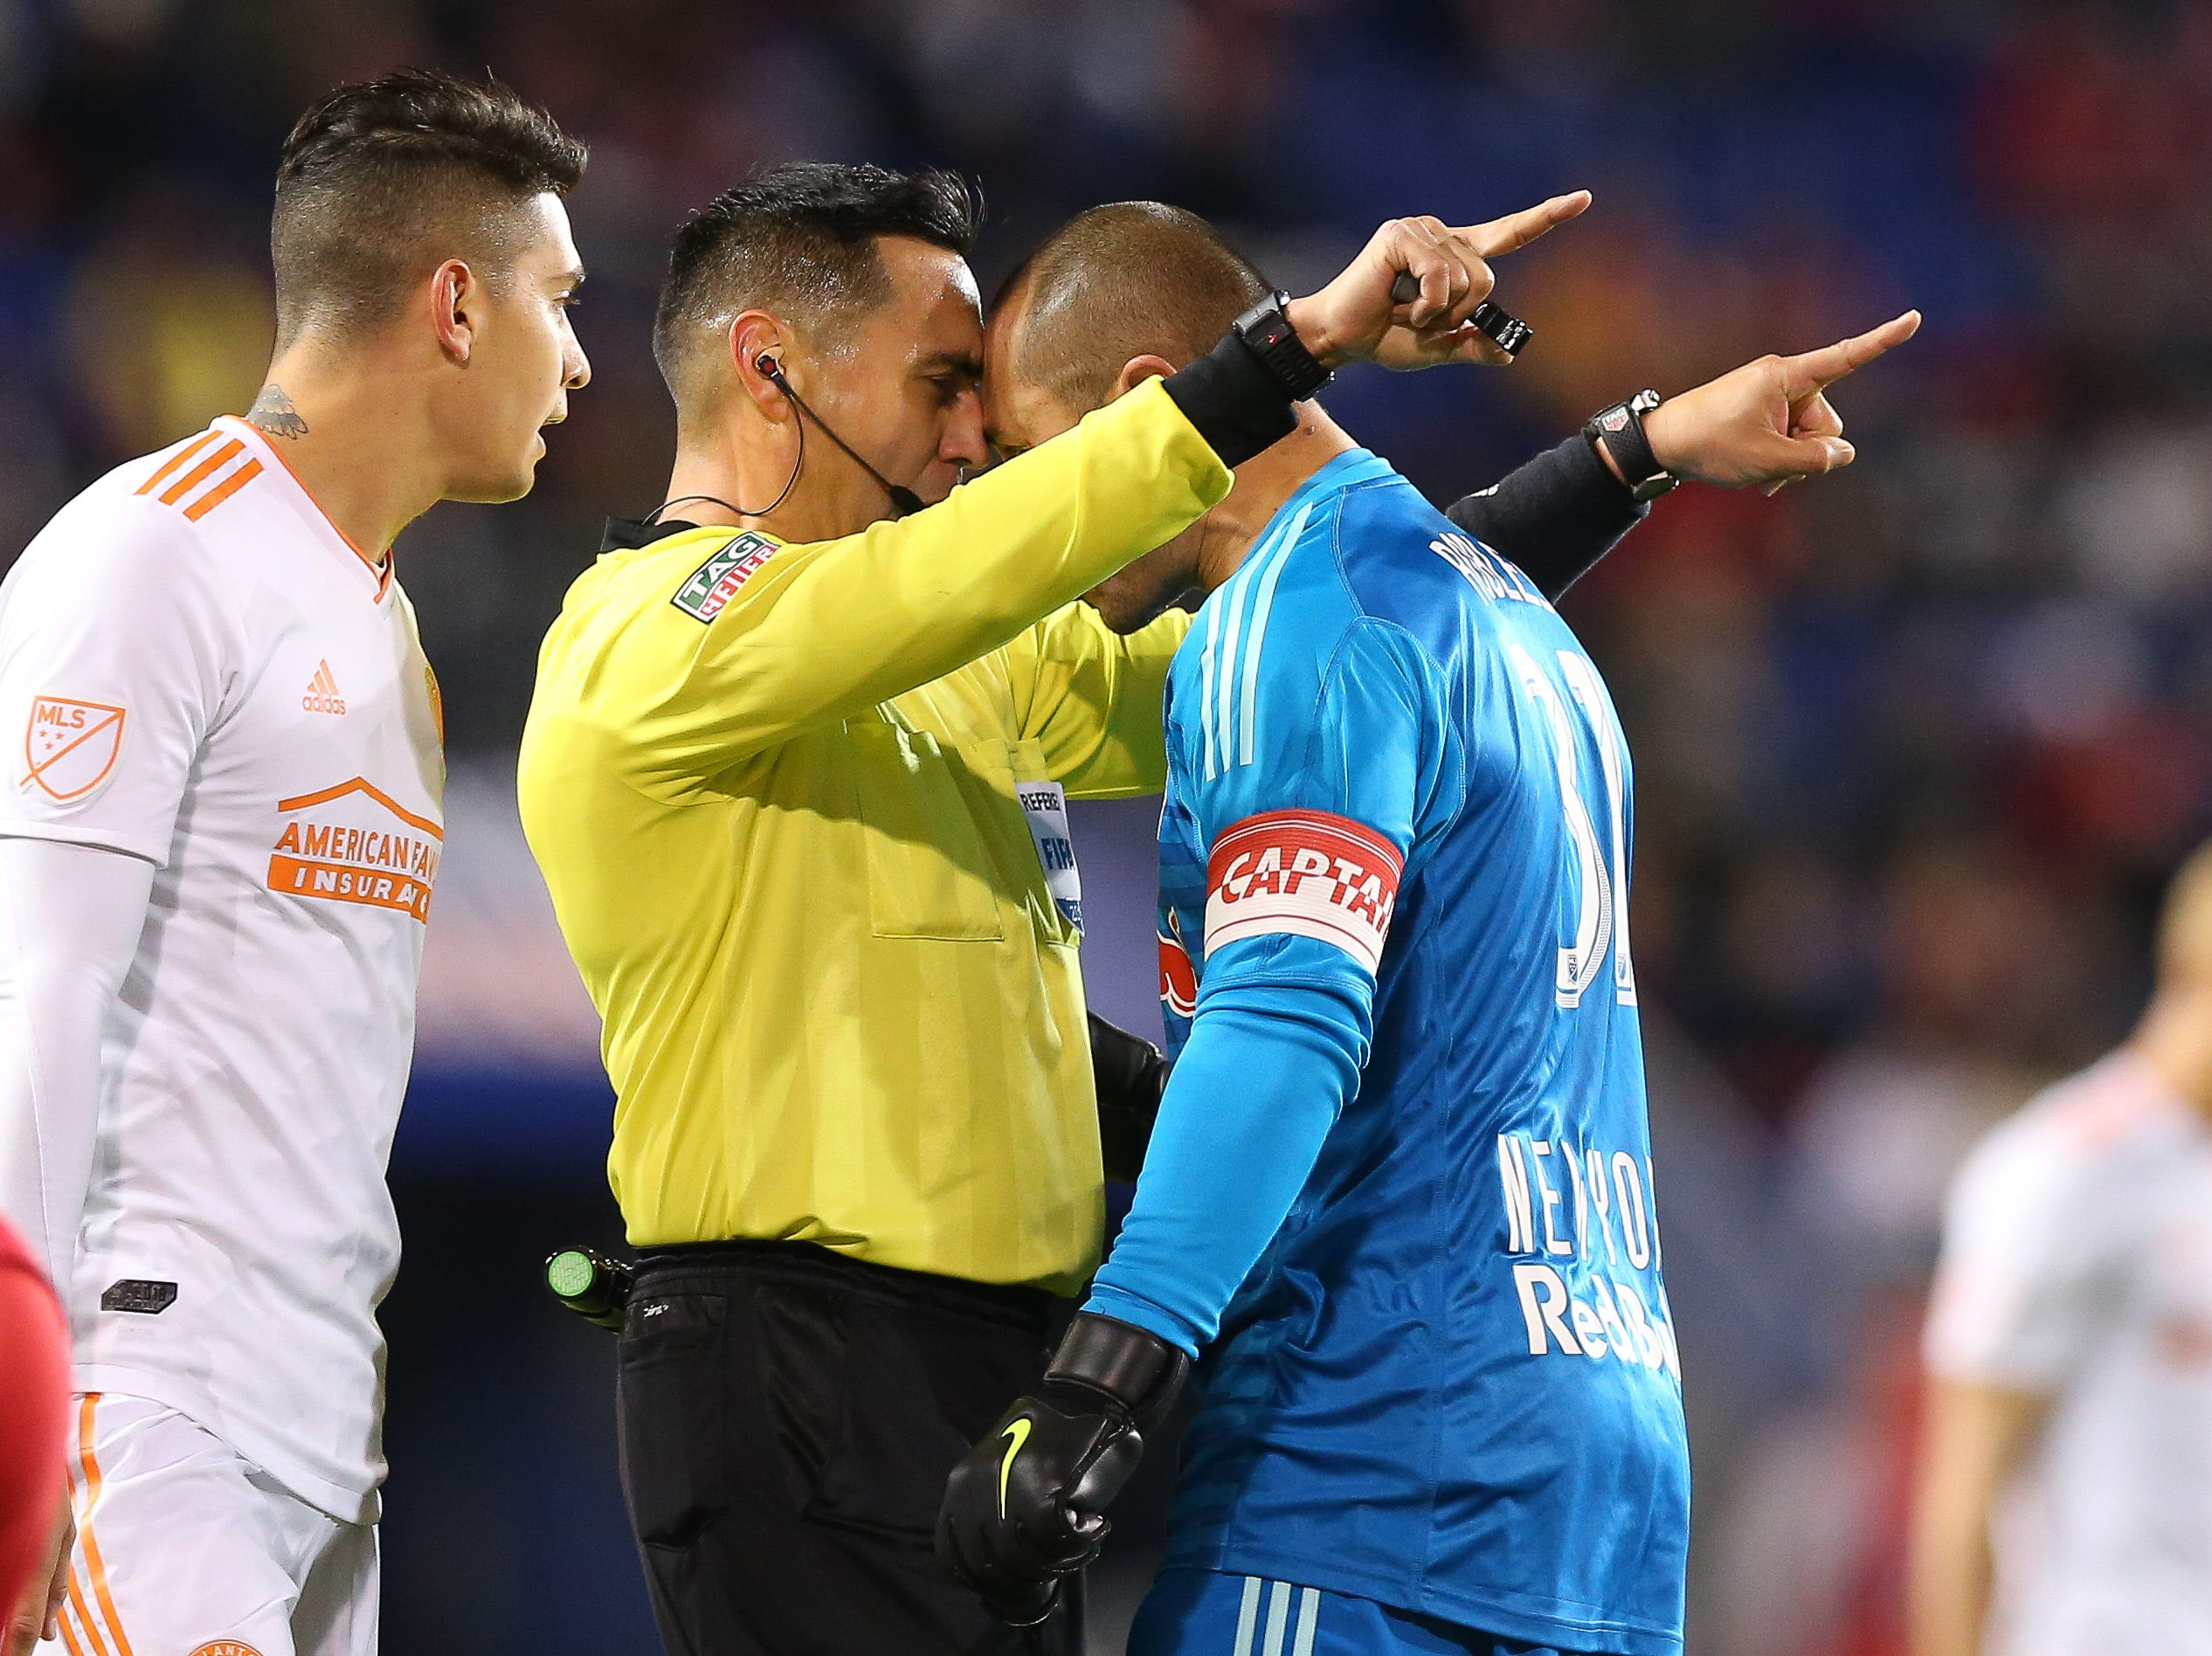 Nov. 29: New York Red Bulls goalkeeper Luis Robles (31) argues with referee Jair Antonio Marrufo during the first half of the second leg of the MLS Eastern Conference championship at Red Bull Arena.